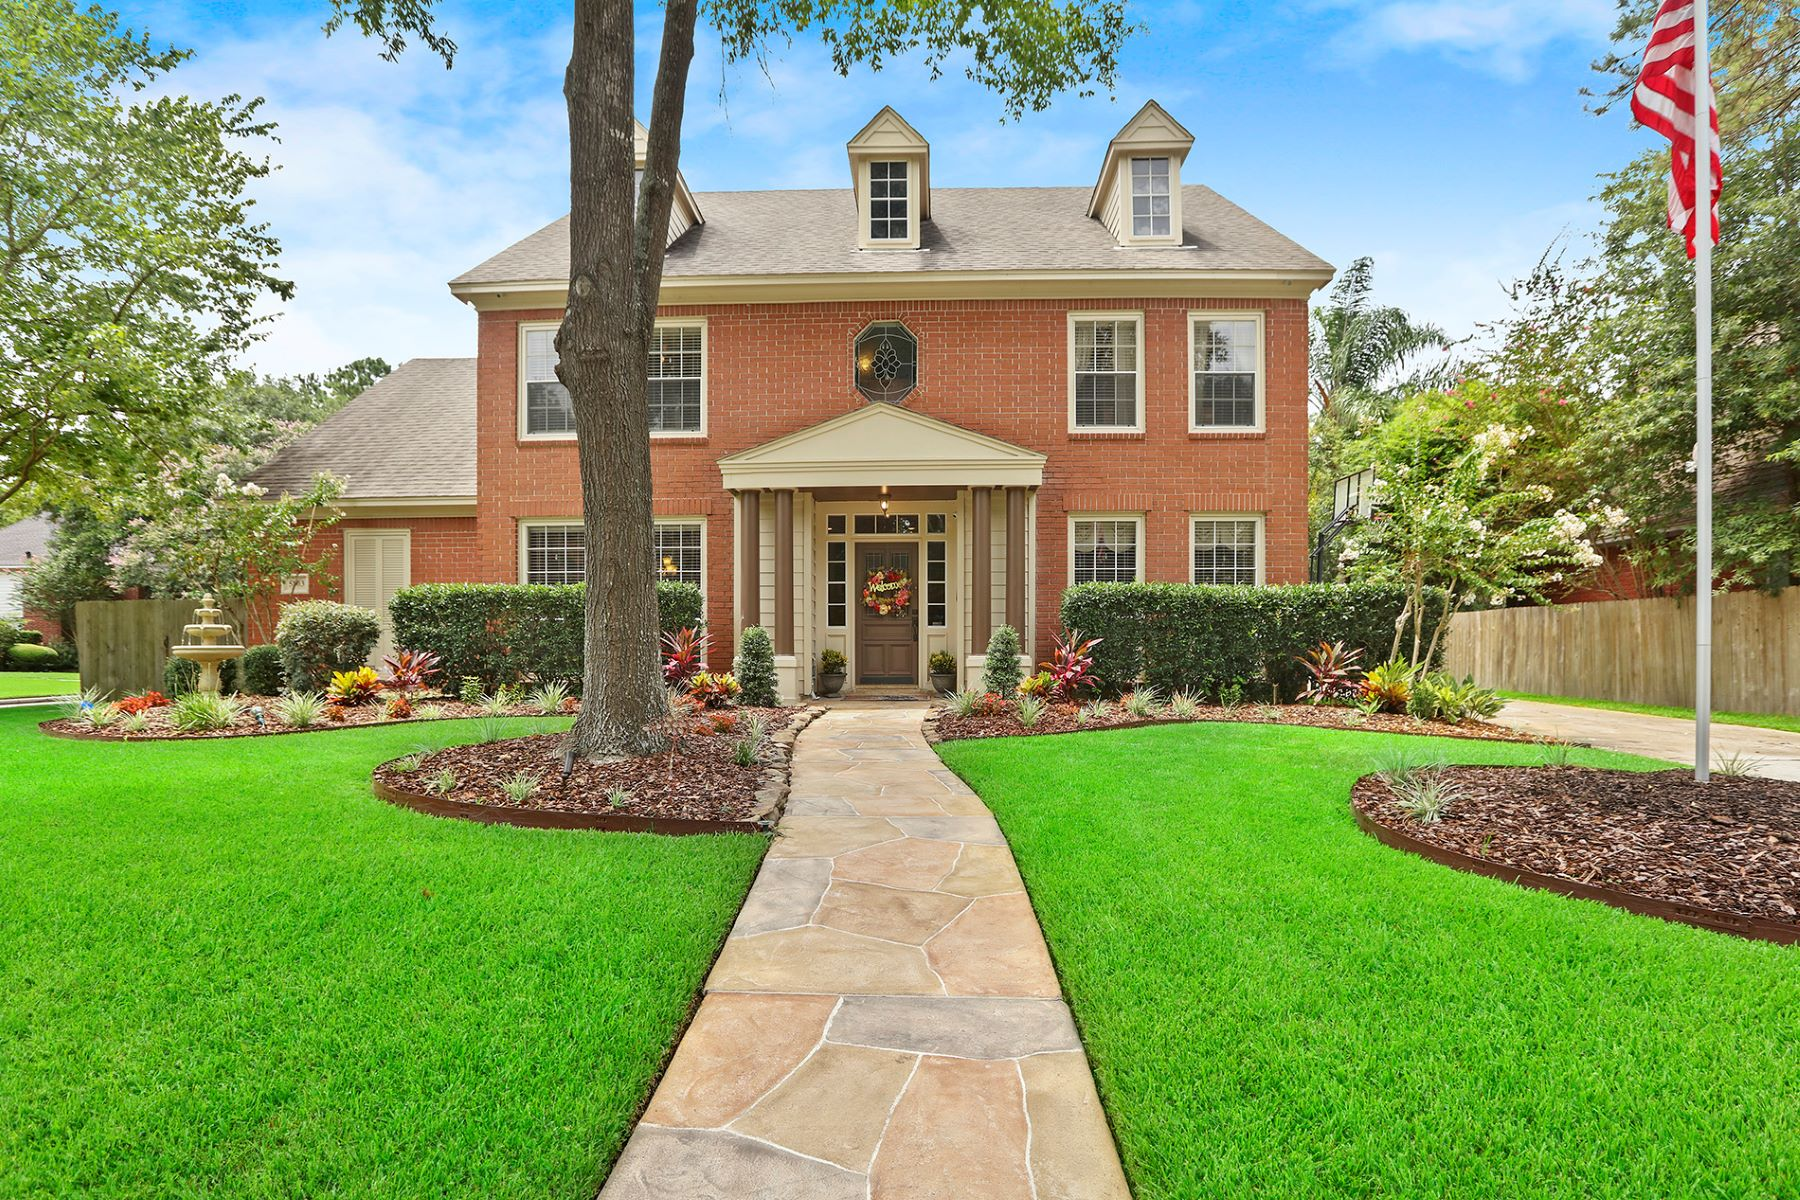 Single Family Homes for Sale at 5803 Mountain View Drive Kingwood, Texas 77345 United States